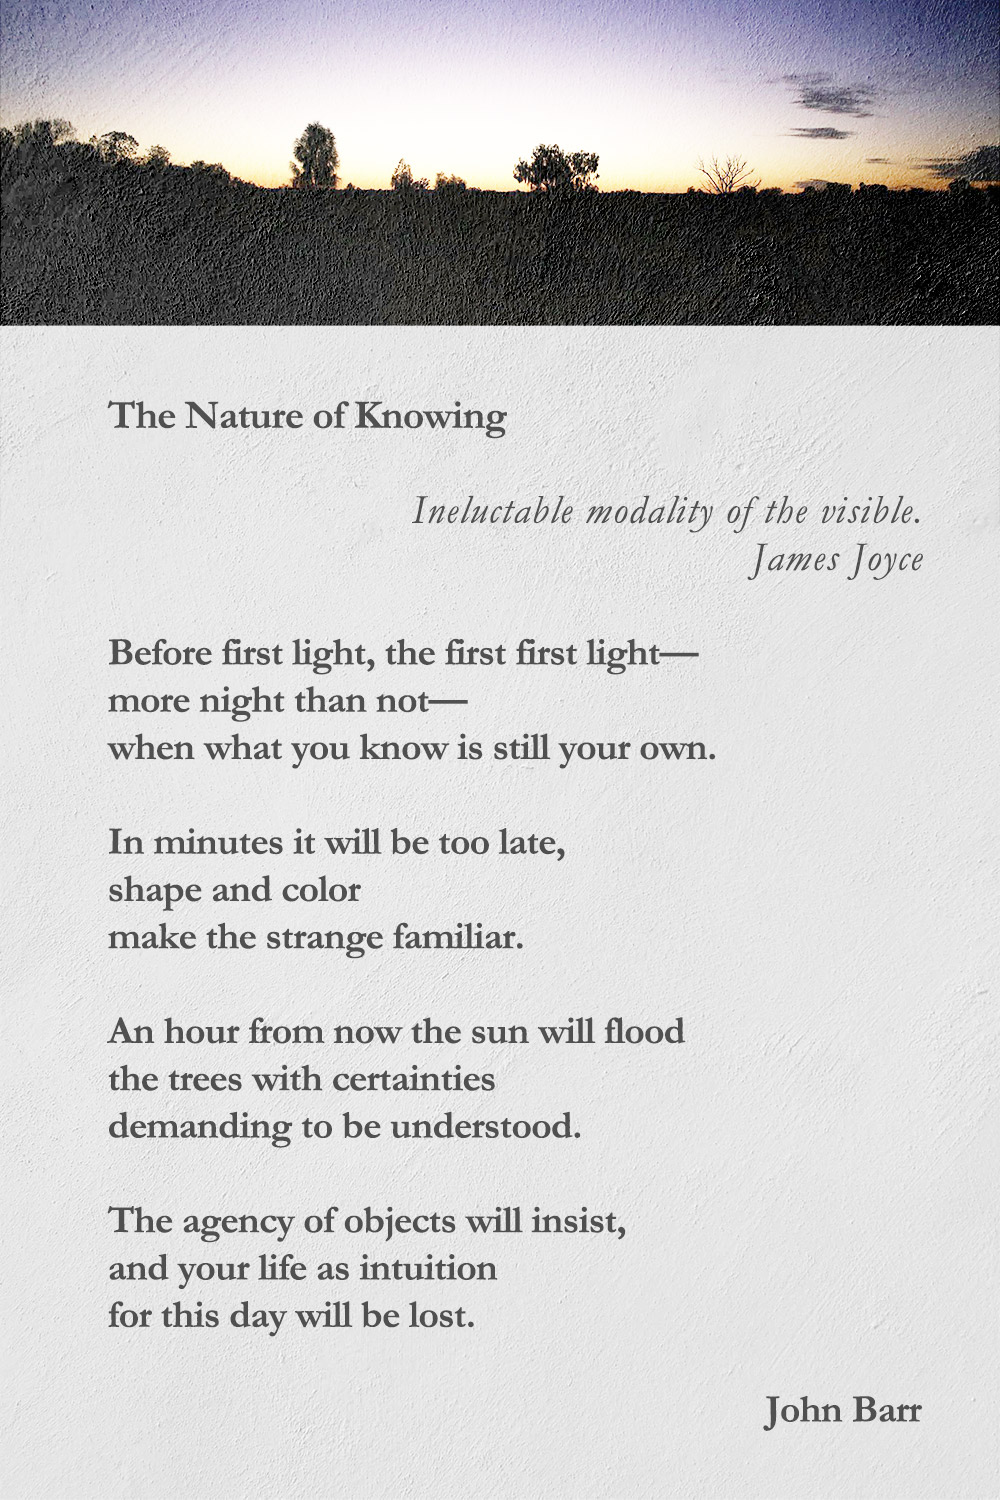 The Nature of Knowing poem by John Barr